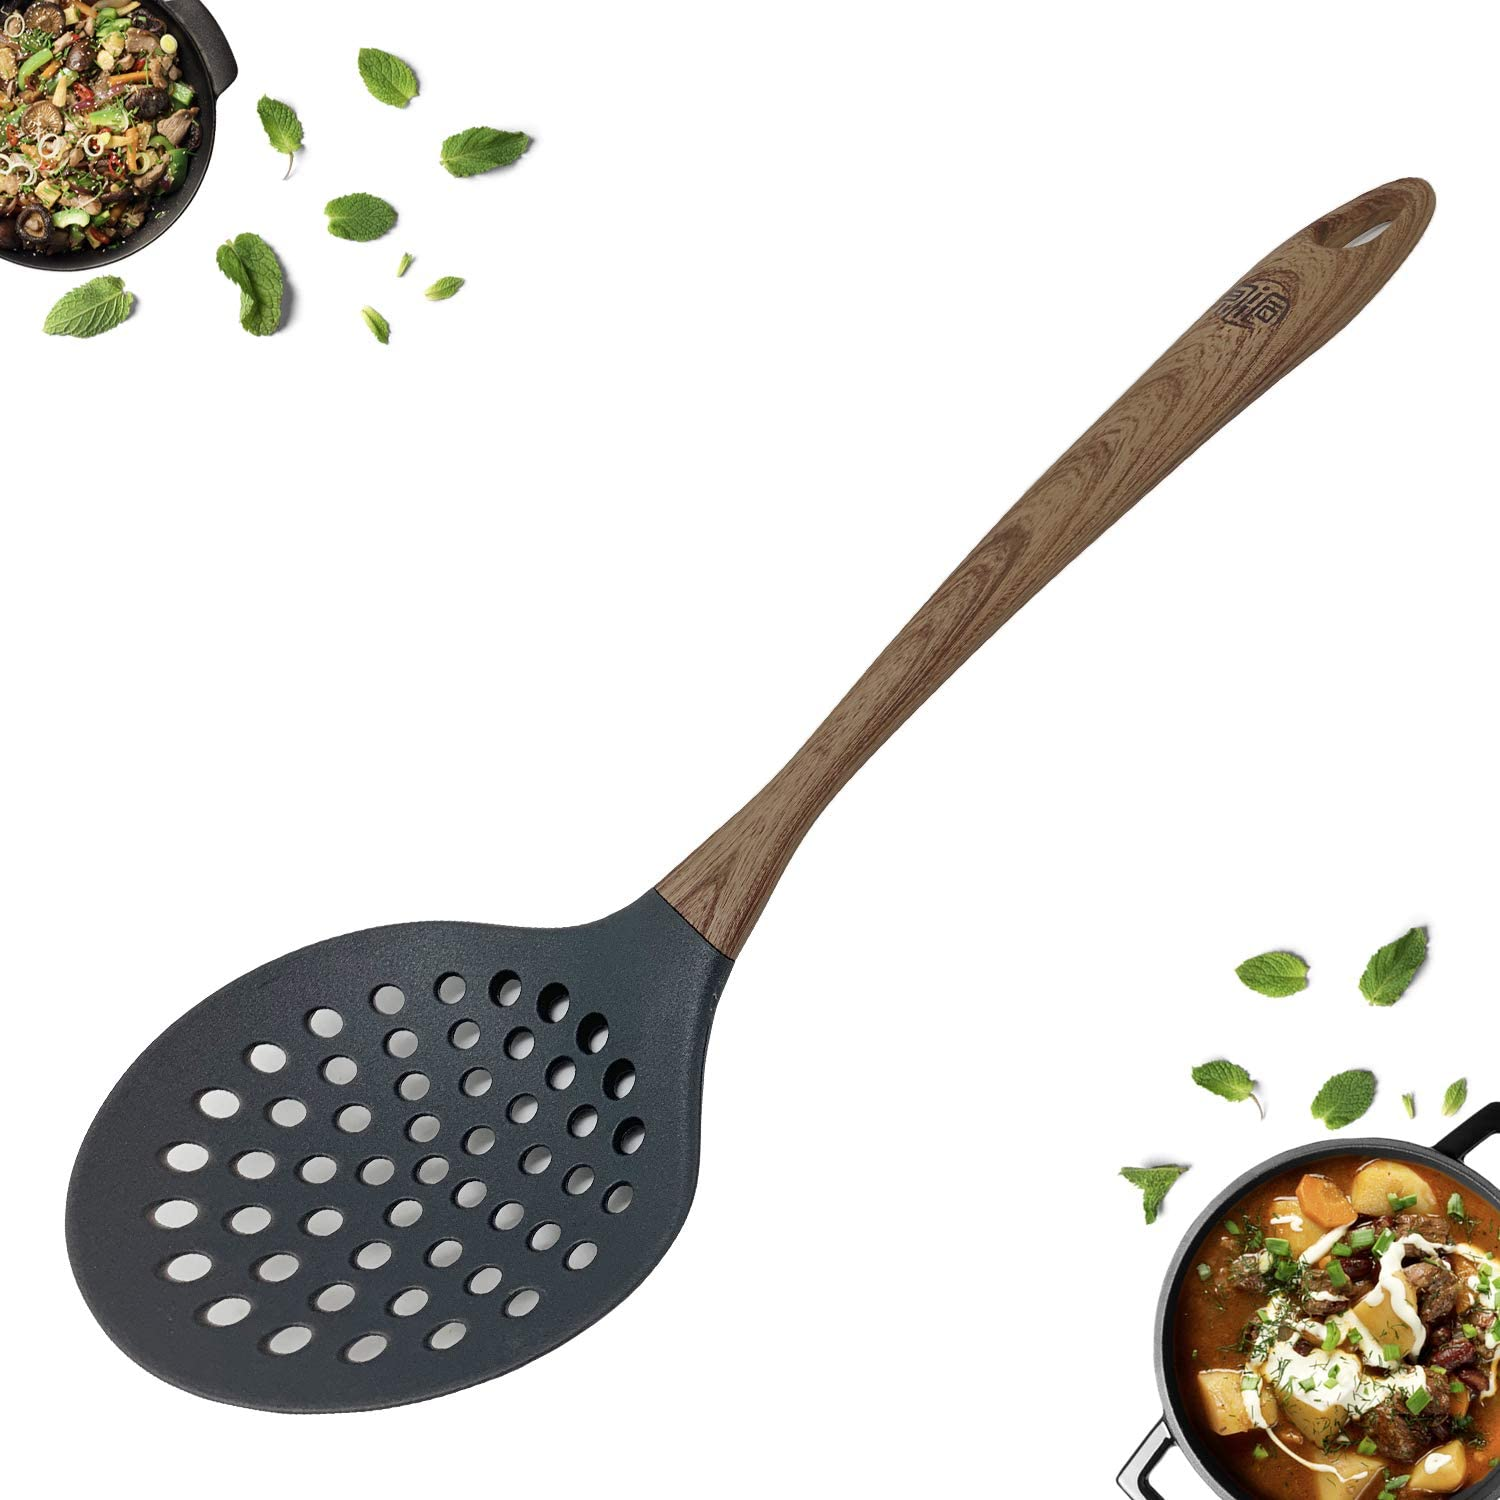 TongYuan Skimmer Slotted Spoon with Woodlike Soft Touch Handle, Stylish and Comfortable Grip Skimmer Spatula - Cooking Strainer For Soups,Stews,Gravy,Hot and Cold Foods